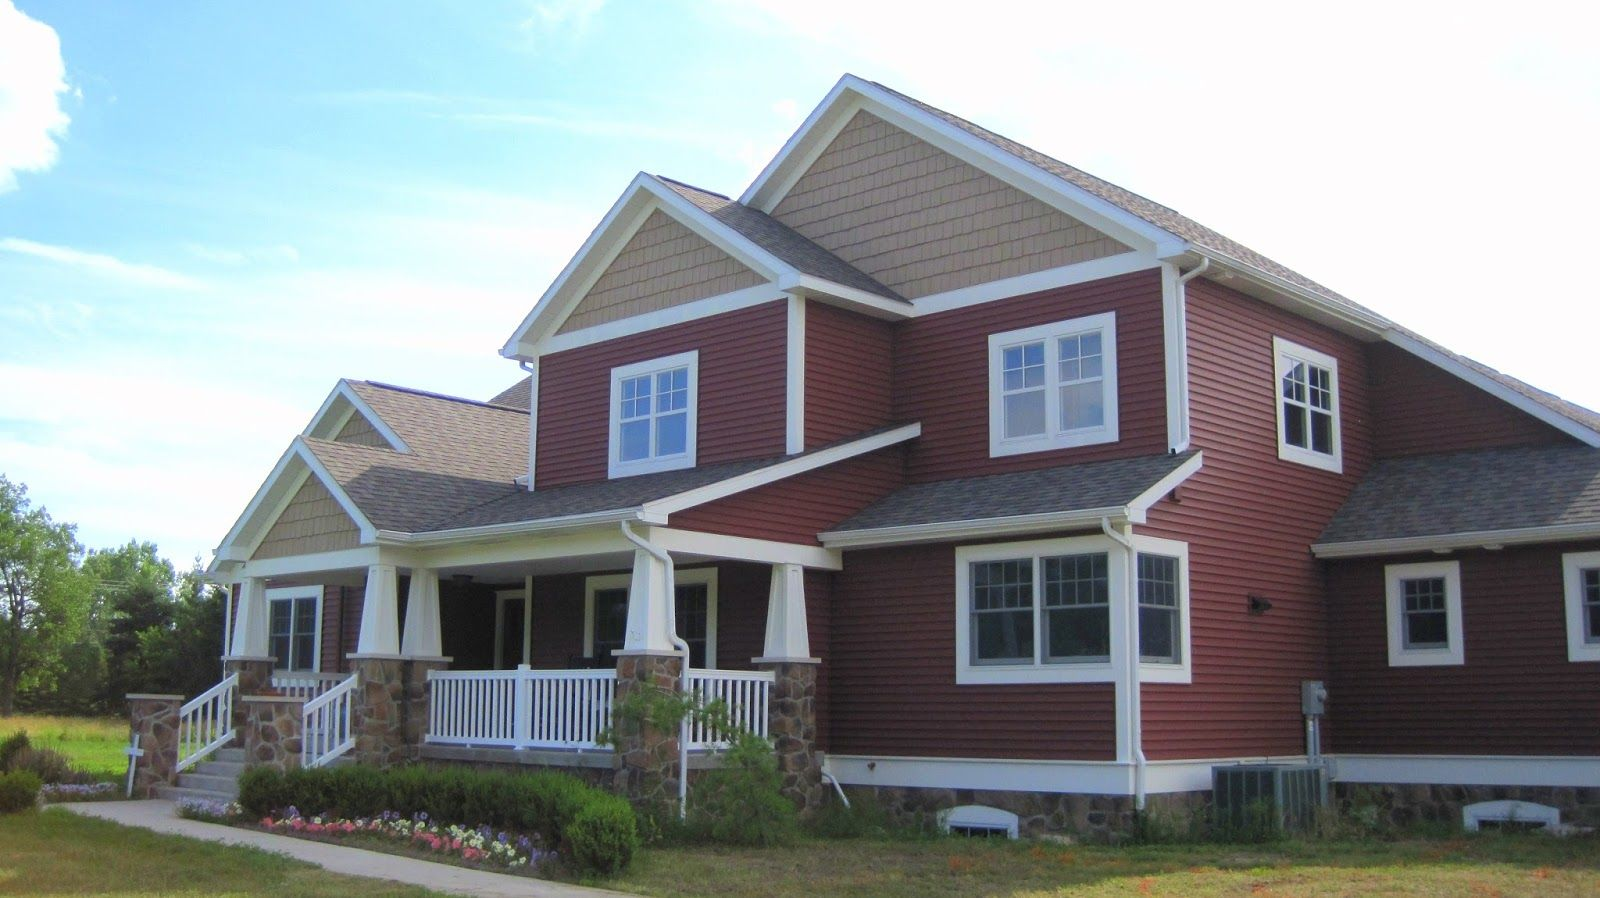 Houses With Winchester Brown Siding Now Feast Your Eyes